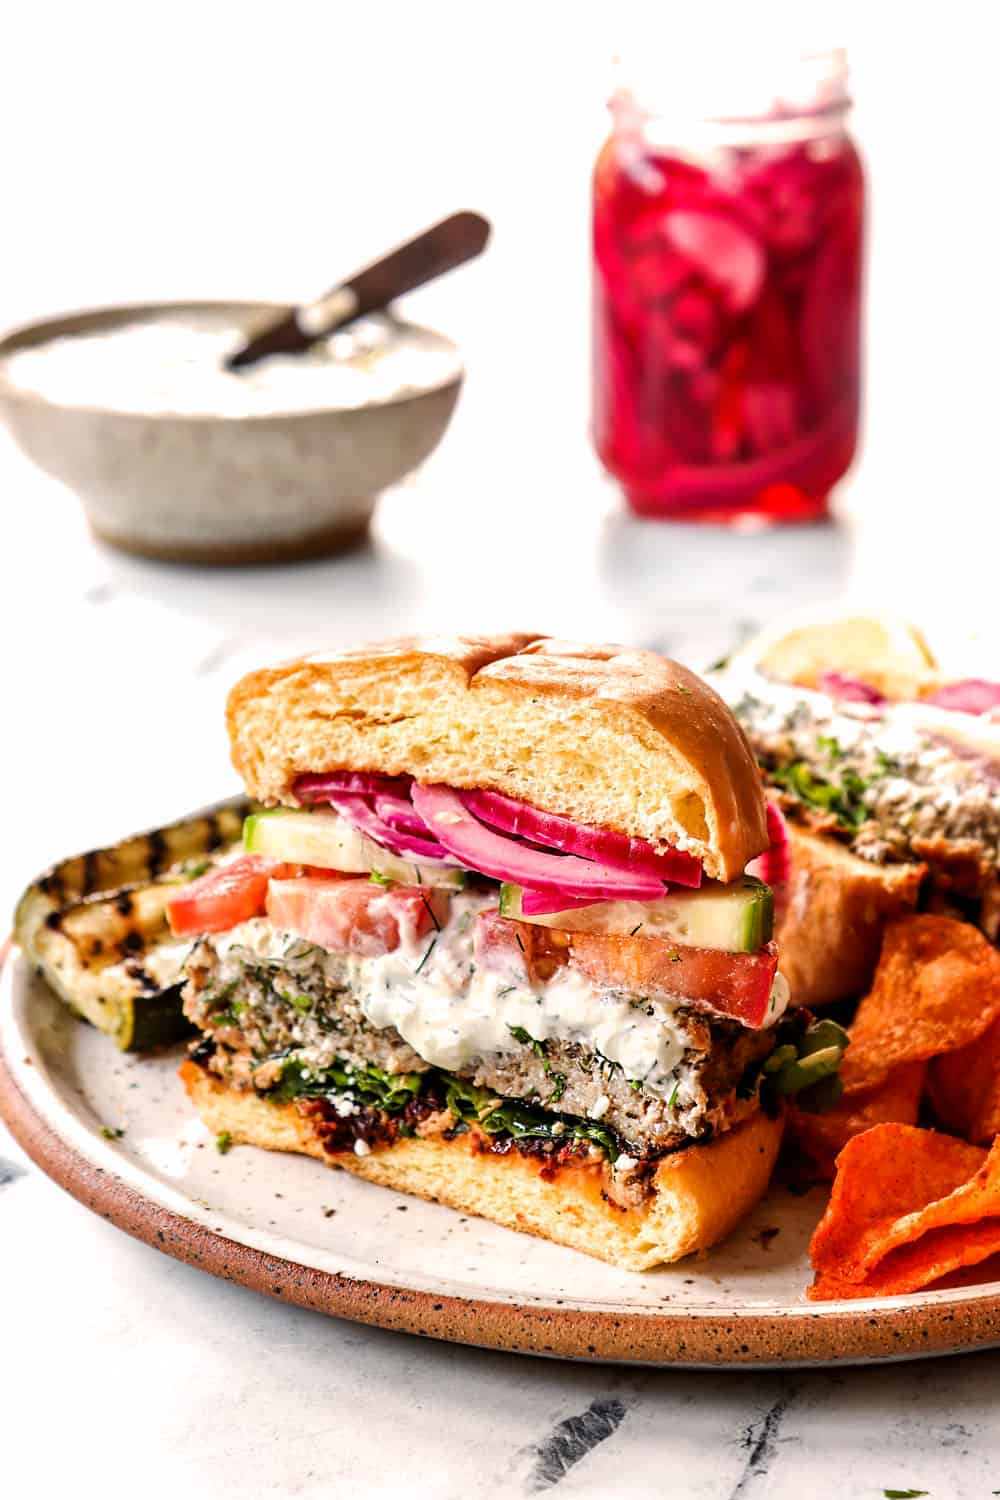 showing the inside of Greek burgers by cutting half to show lamb burger patty layered with tzatziki, cucumbers, tomatoes and red onions